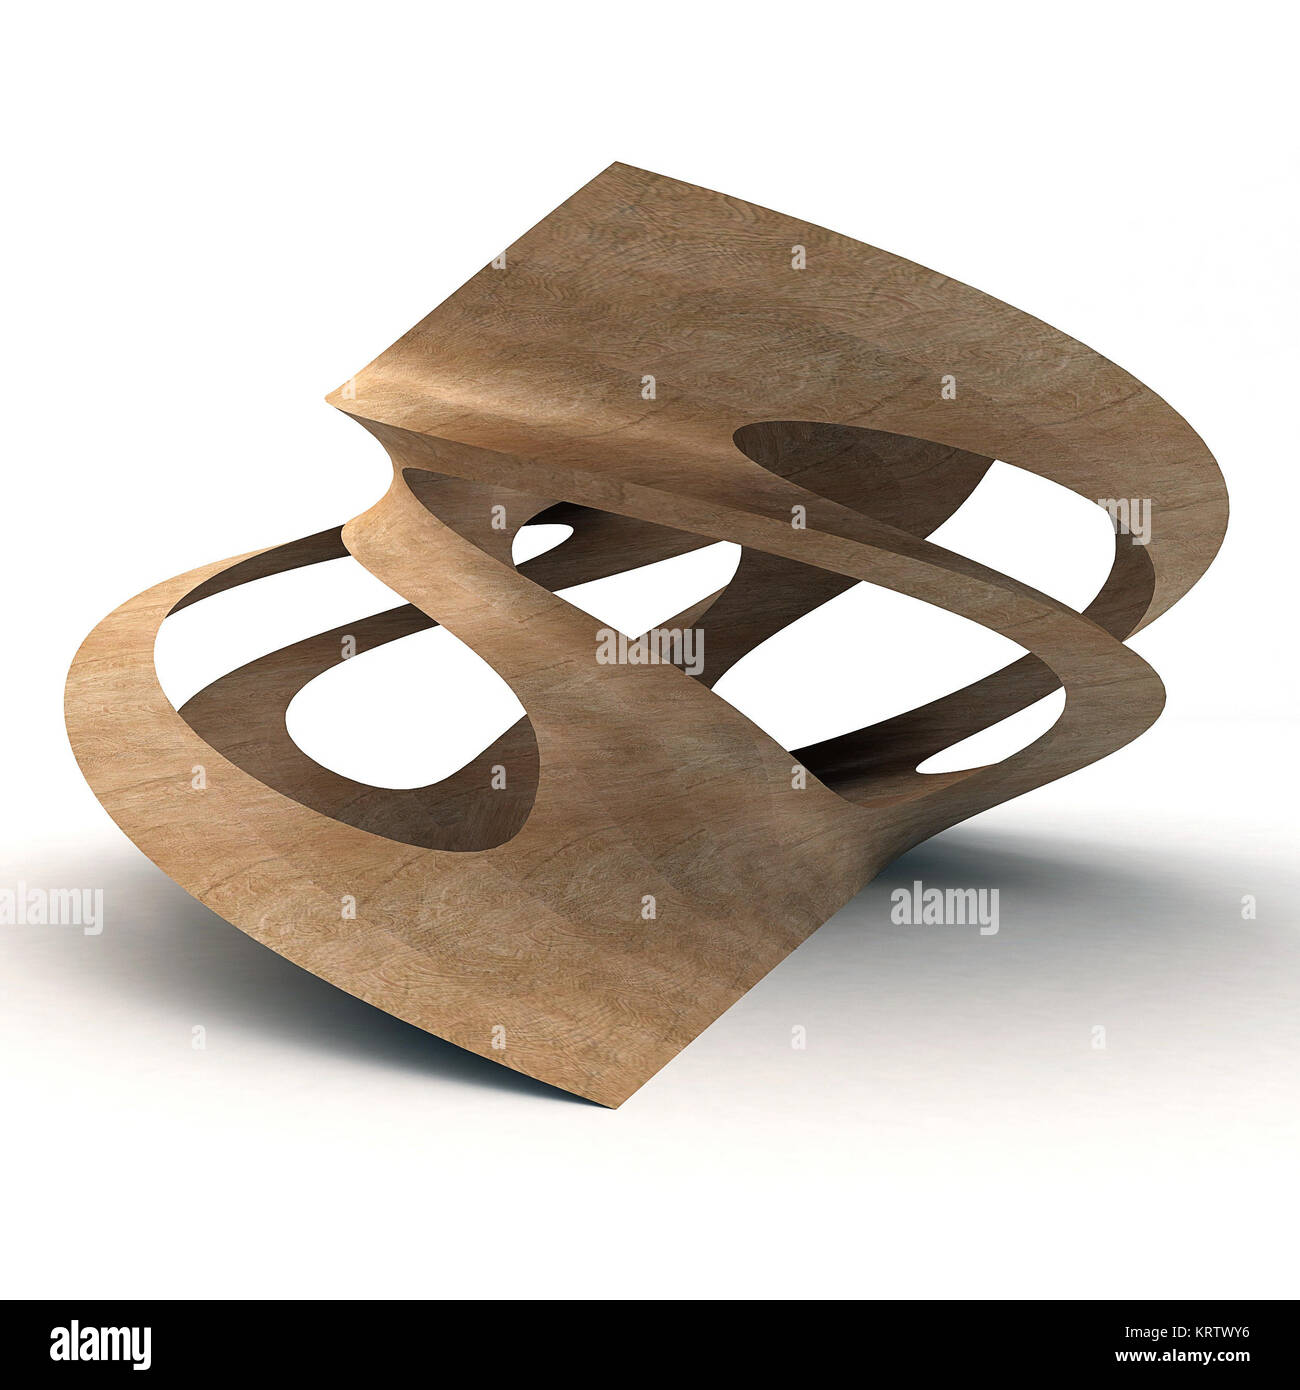 3D Illustration Of Twisted Wood - Stock Image